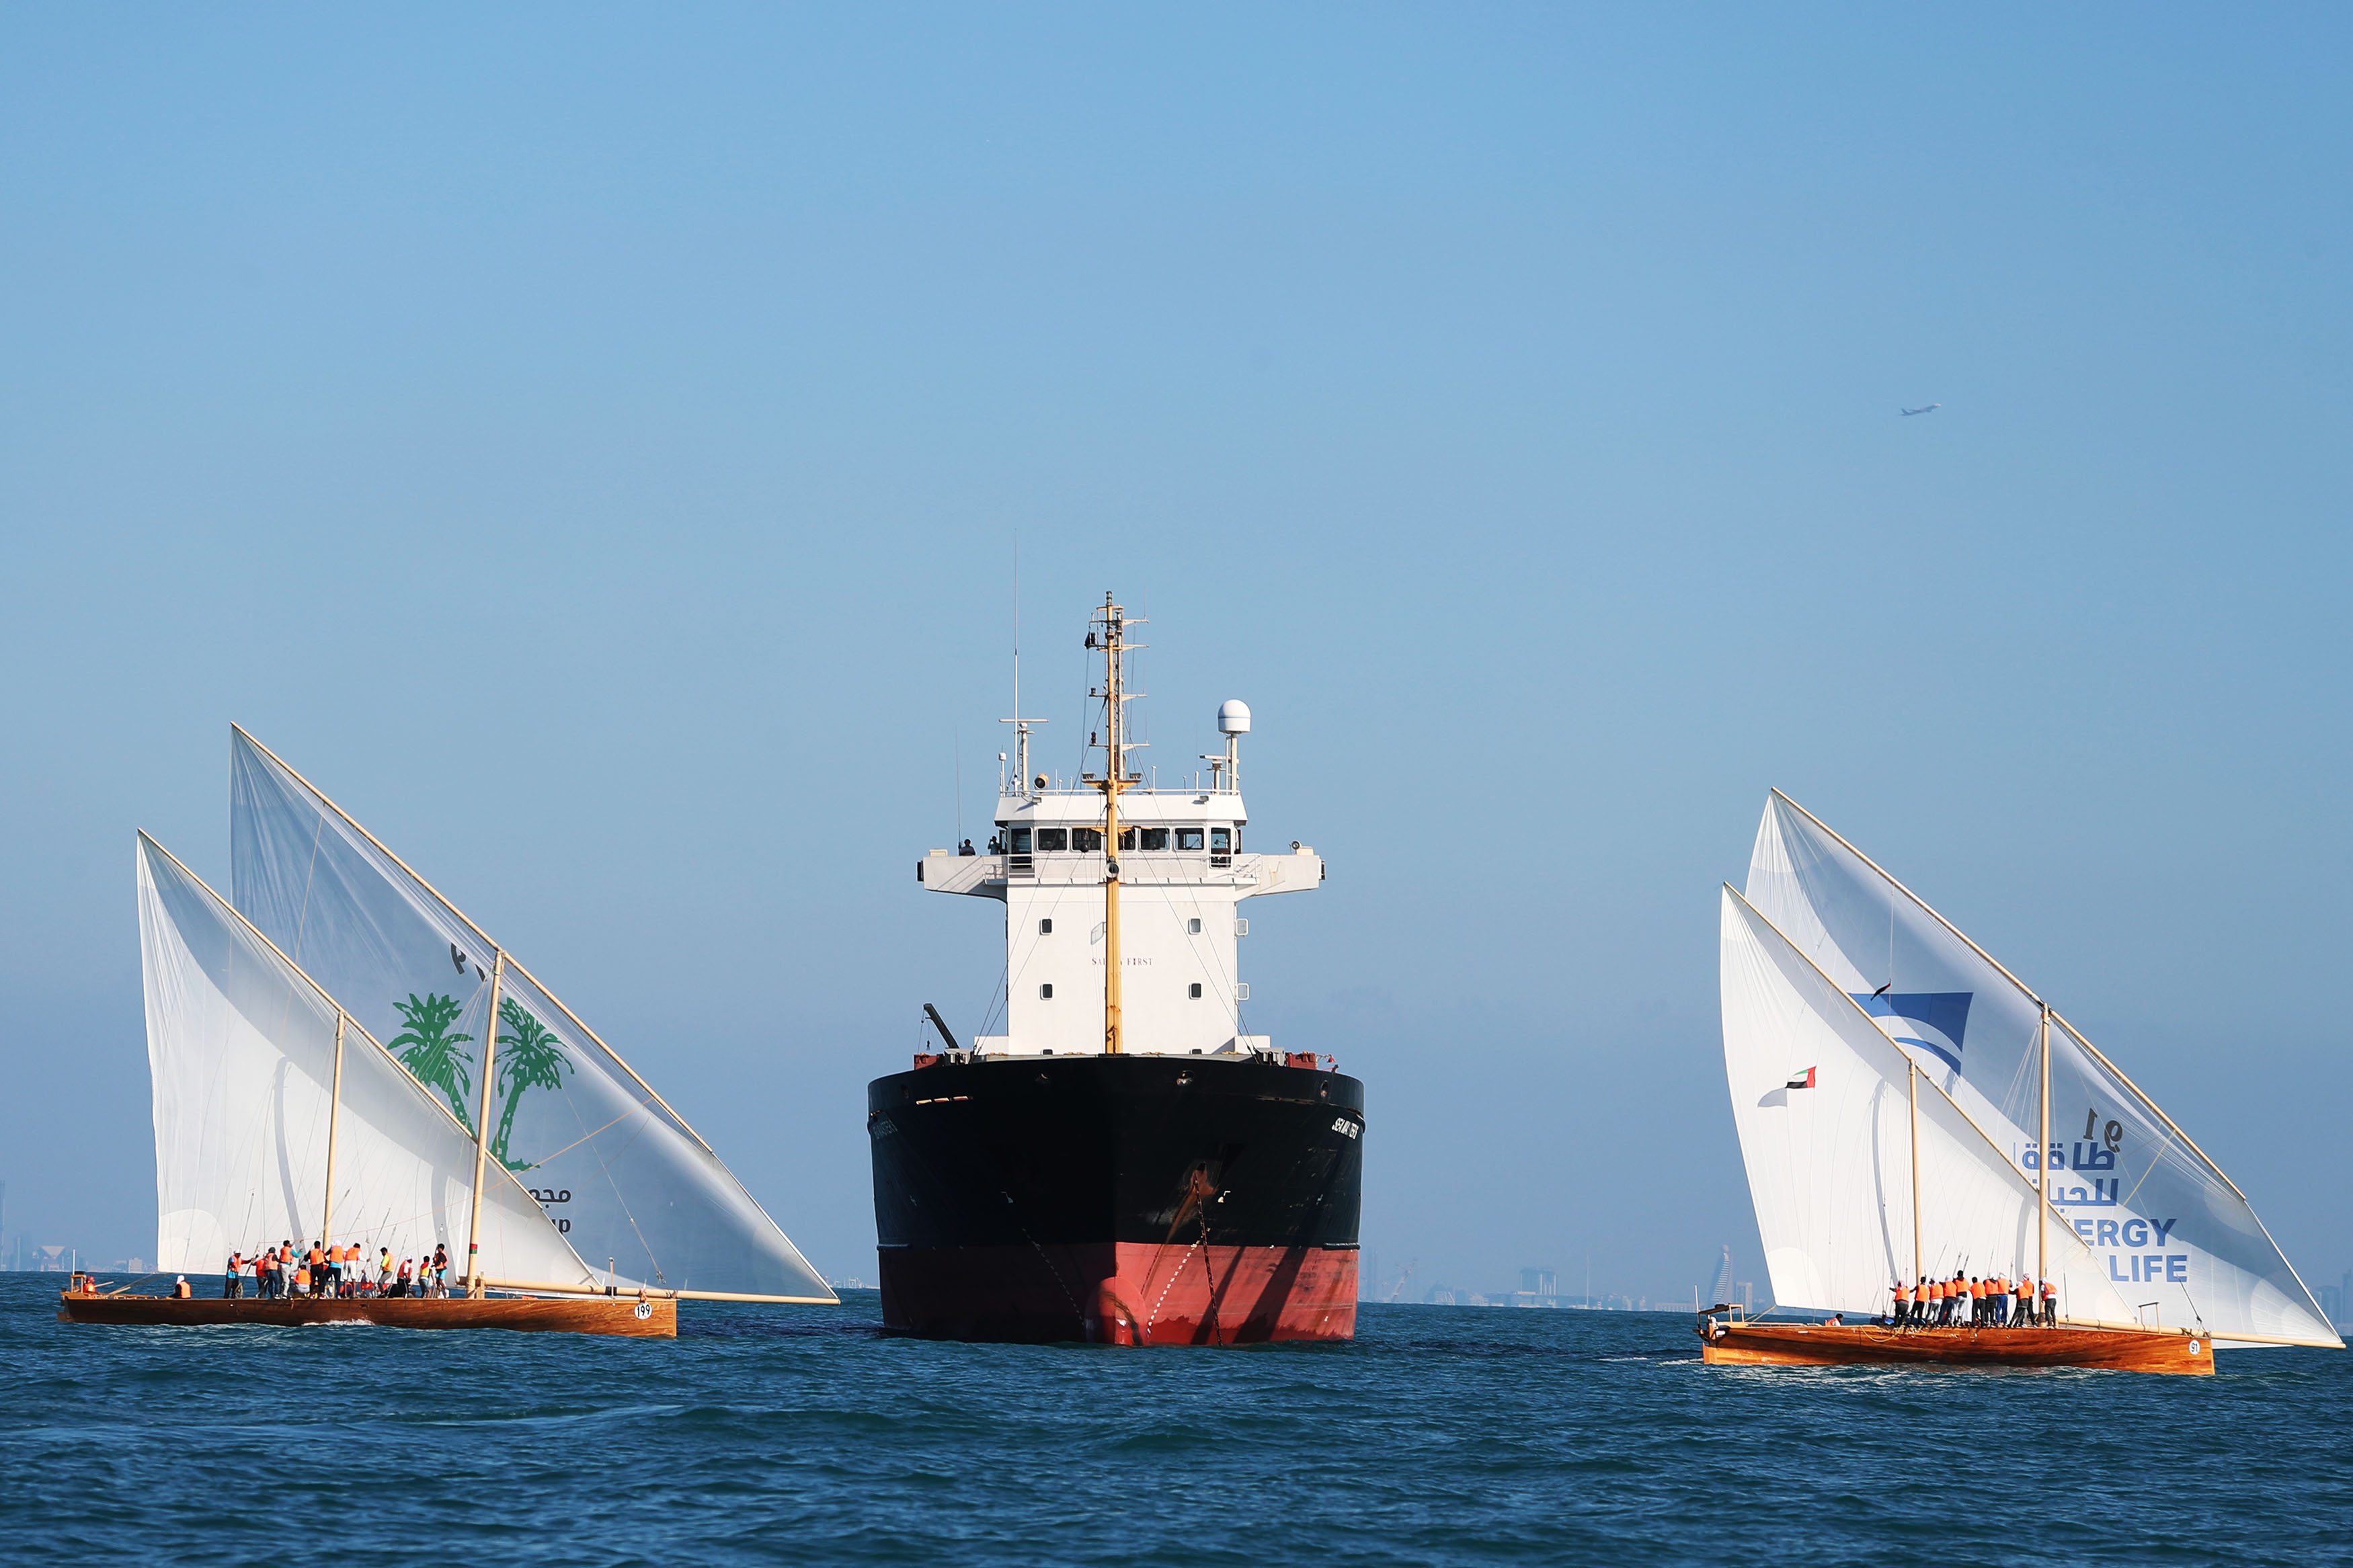 60ft Dhow Sailing Race on Saturday in Dubai Shore